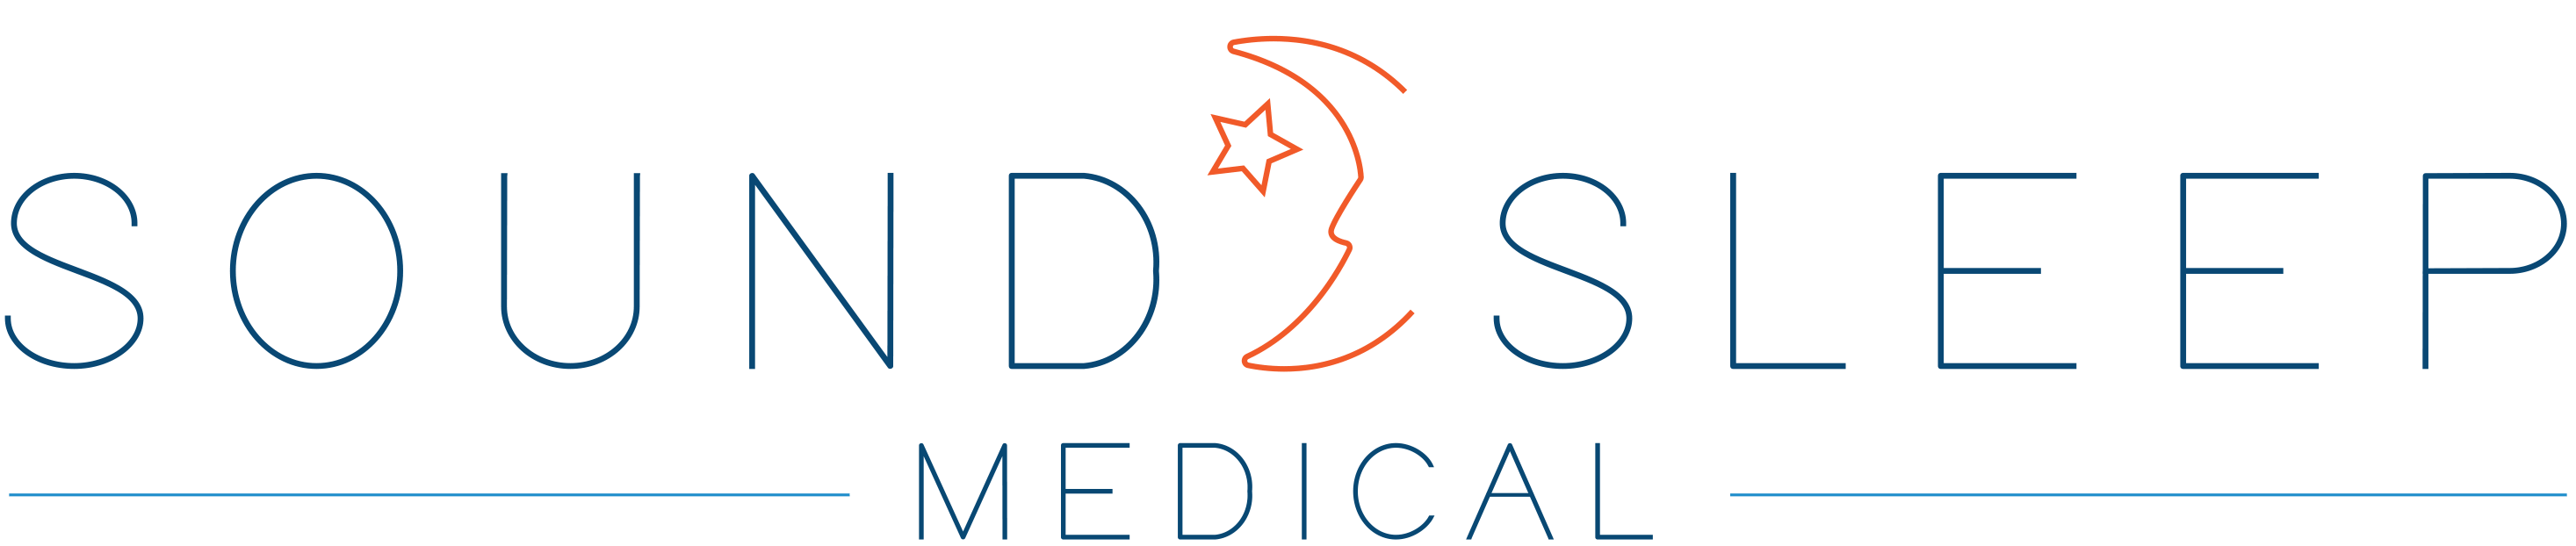 sound sleep medical logo